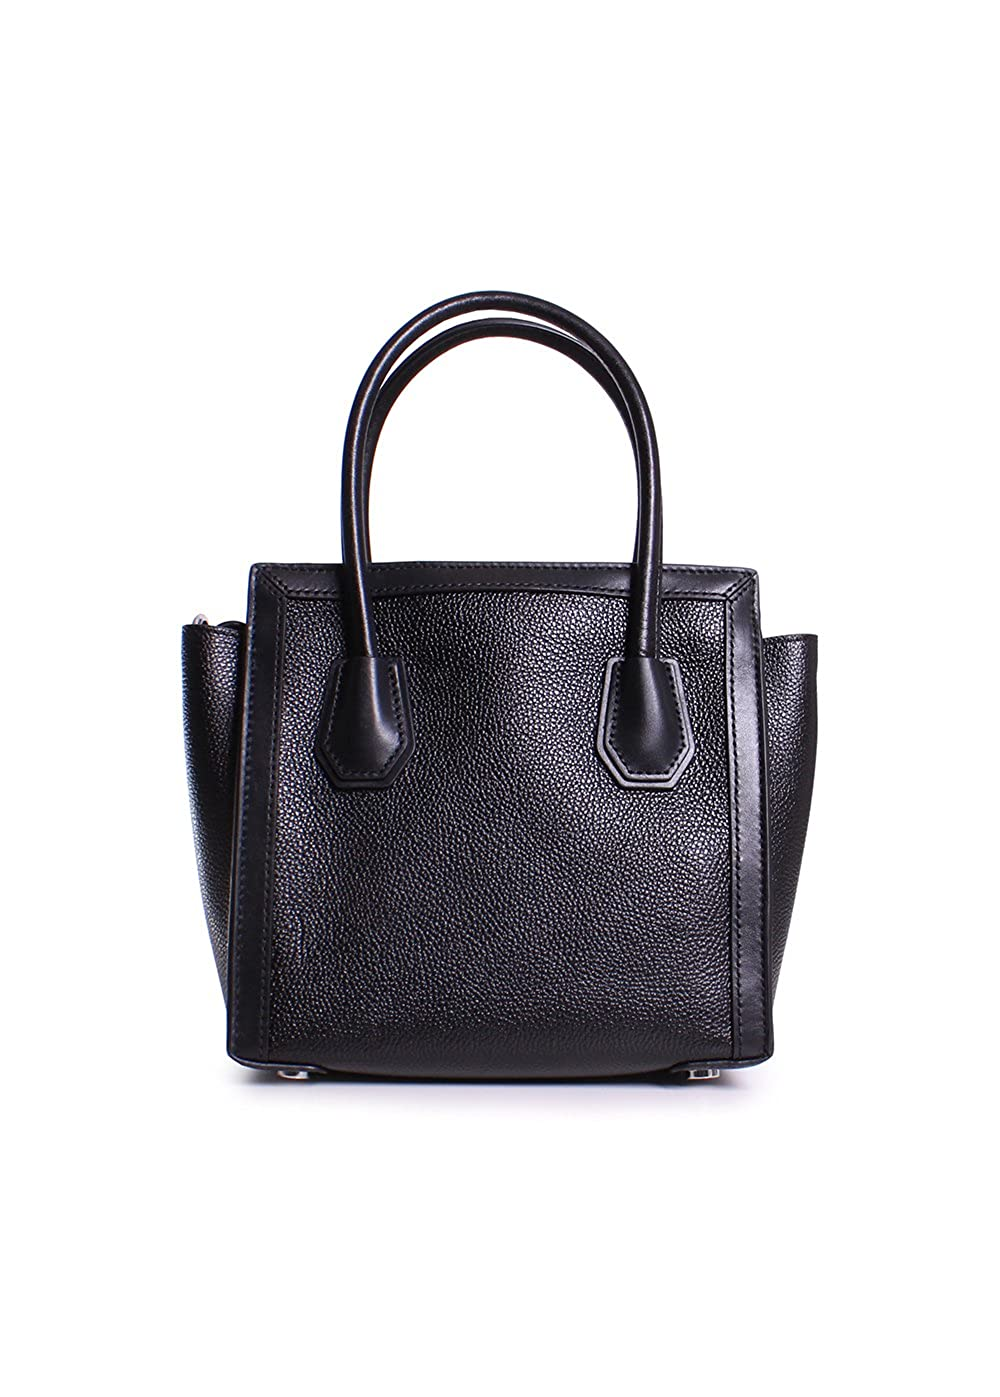 2508d1712b09 Michael Michael Kors Mercer Studio Patent Leather Medium Woven Messenger  Handbag in Black  Handbags  Amazon.com